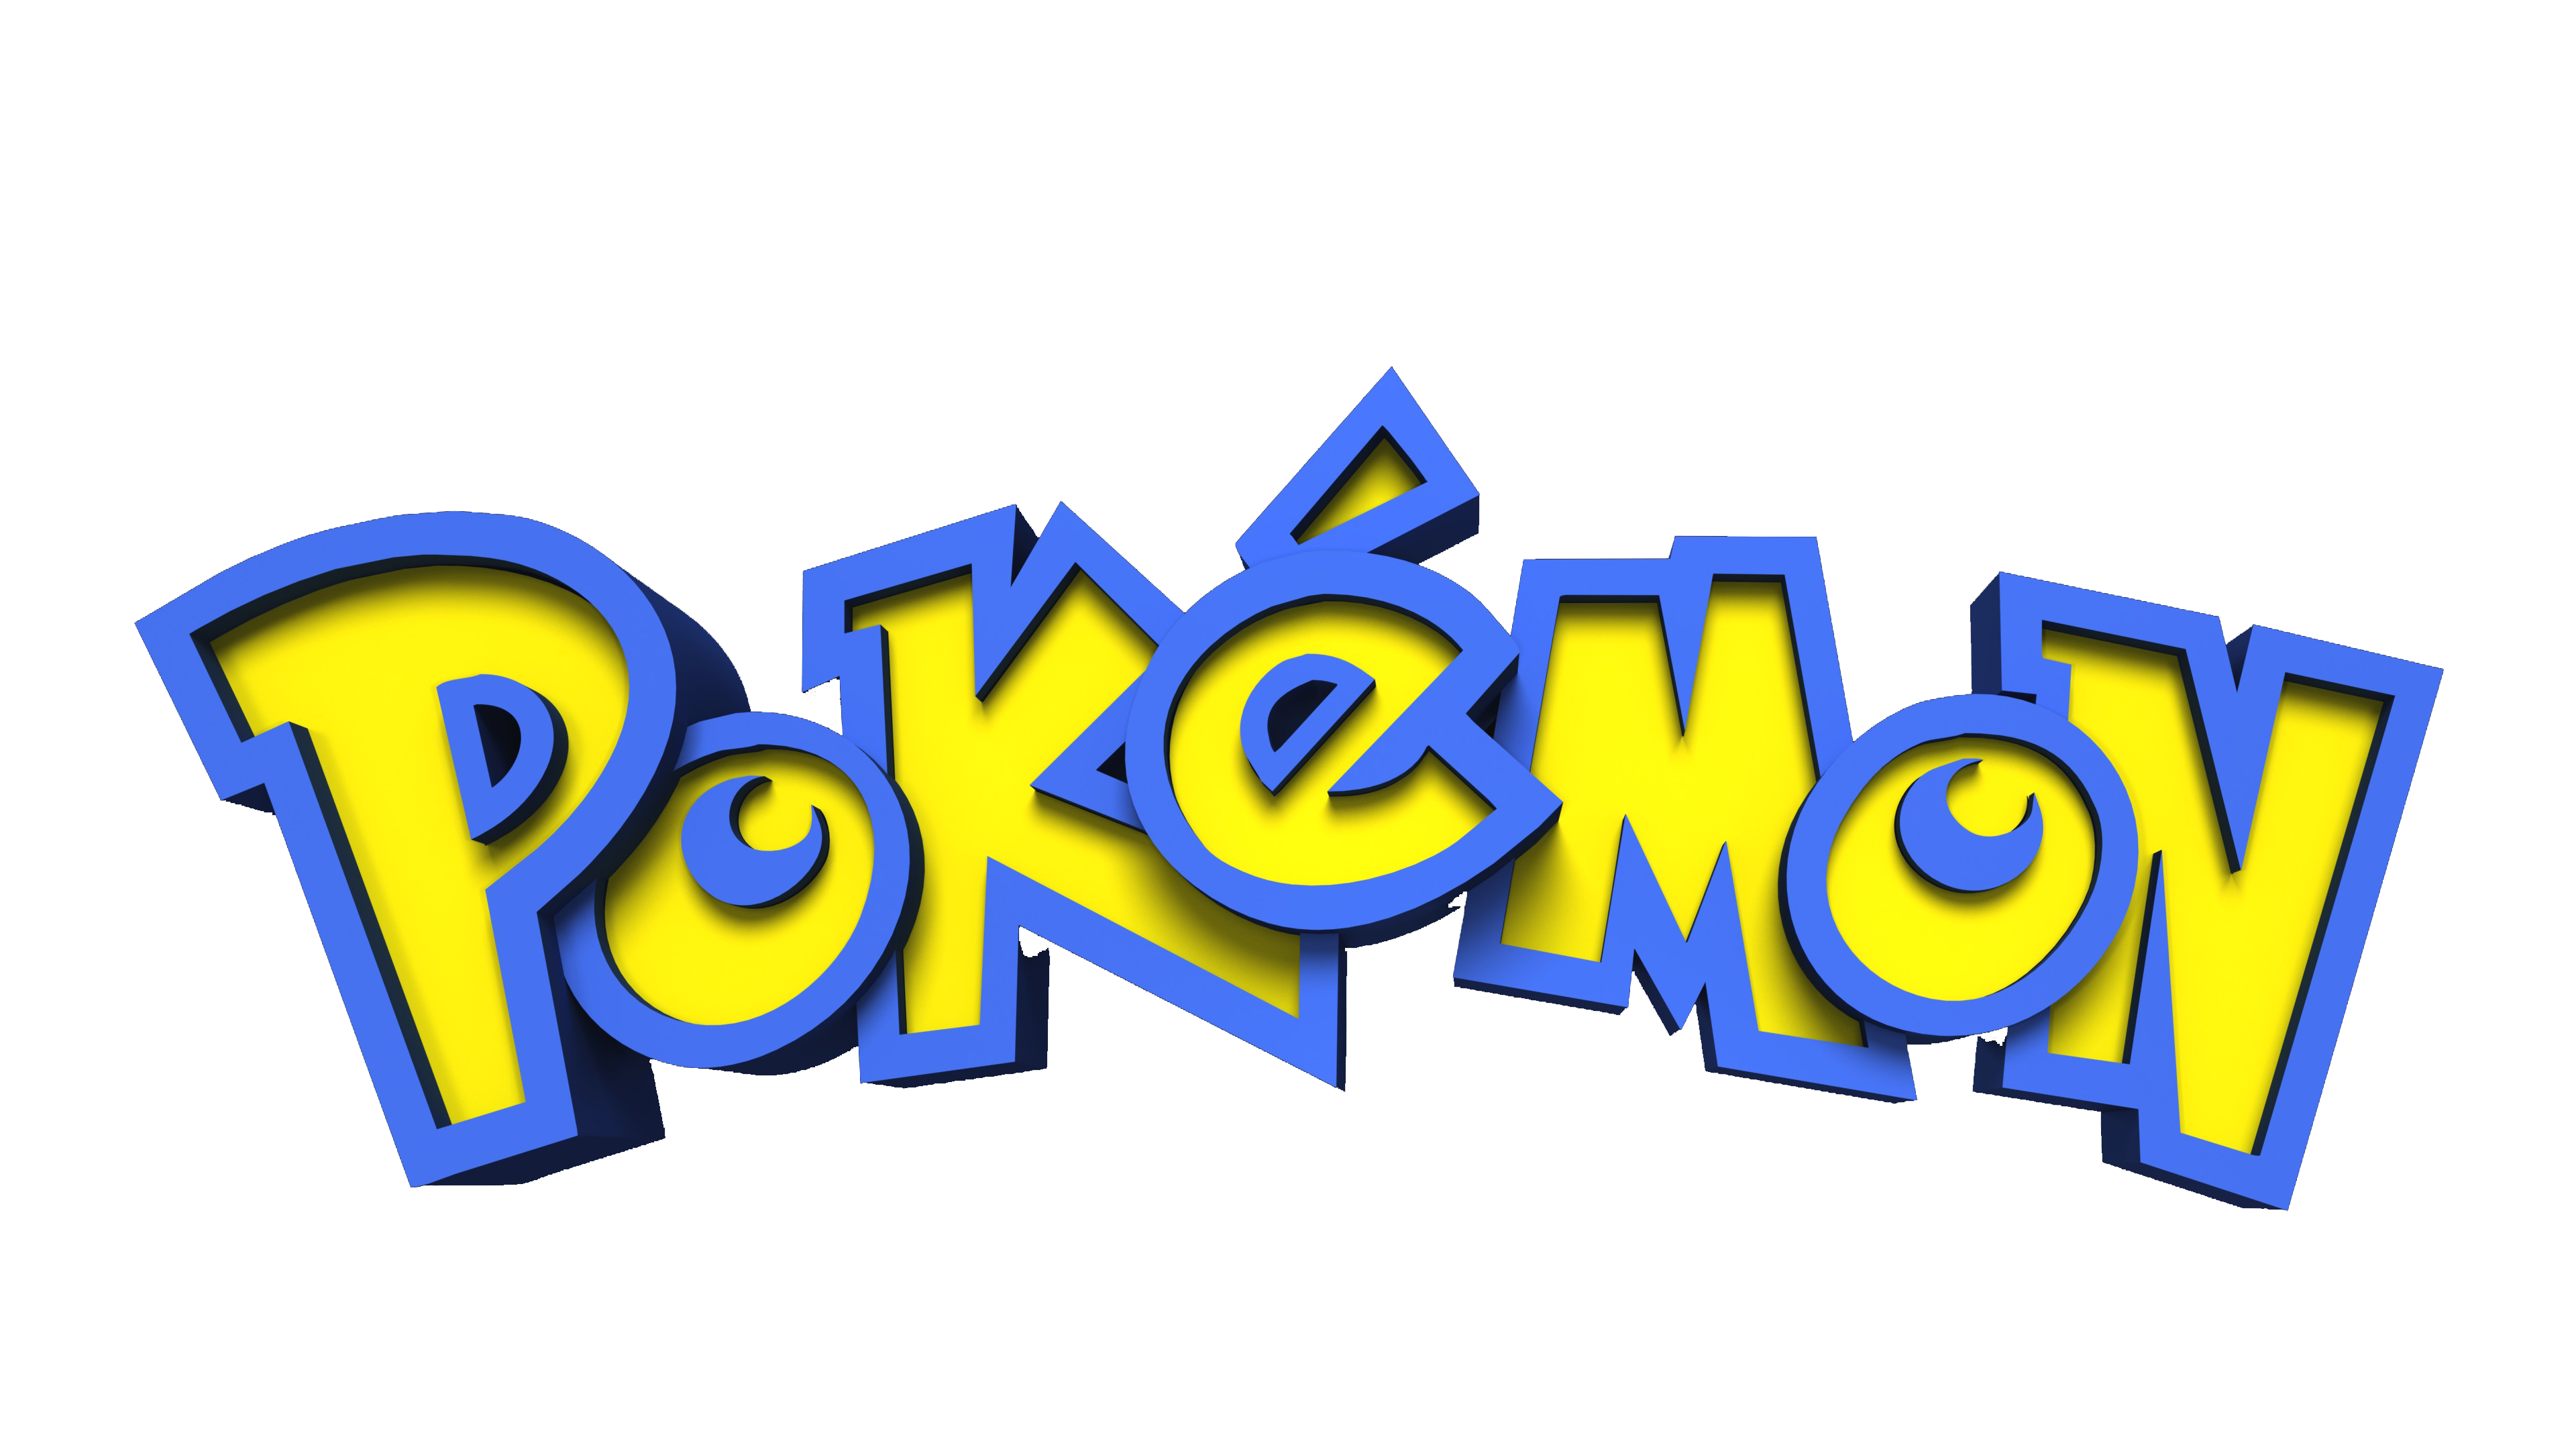 pokemon logo png 10 free Cliparts   Download images on ...